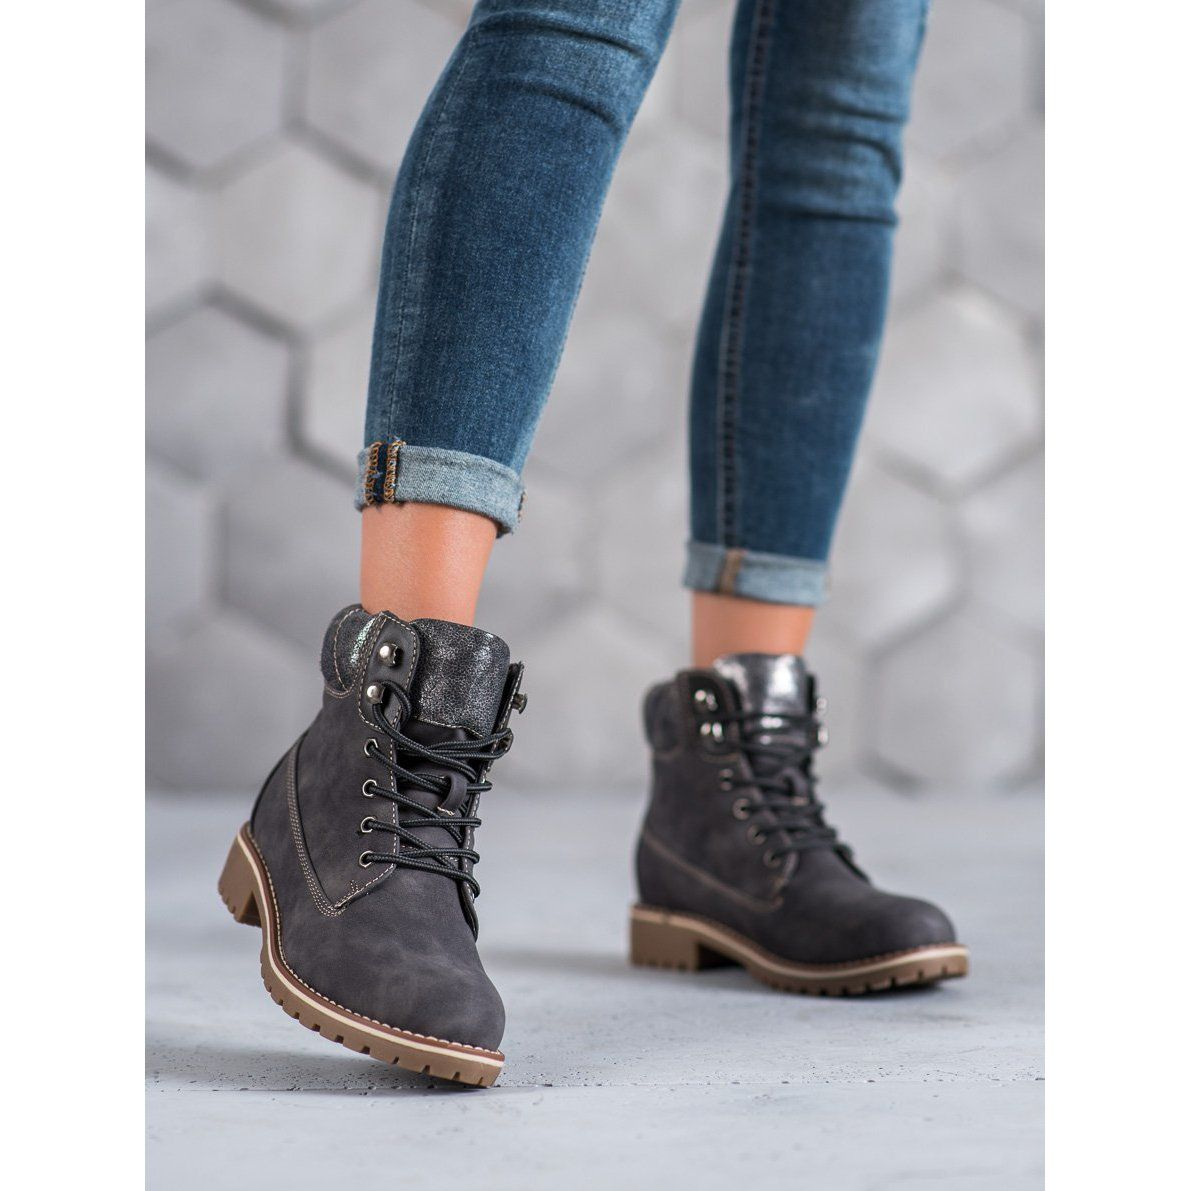 Super Me Wiazane Trapery Szare Boots Womens Boots Boot Shoes Women